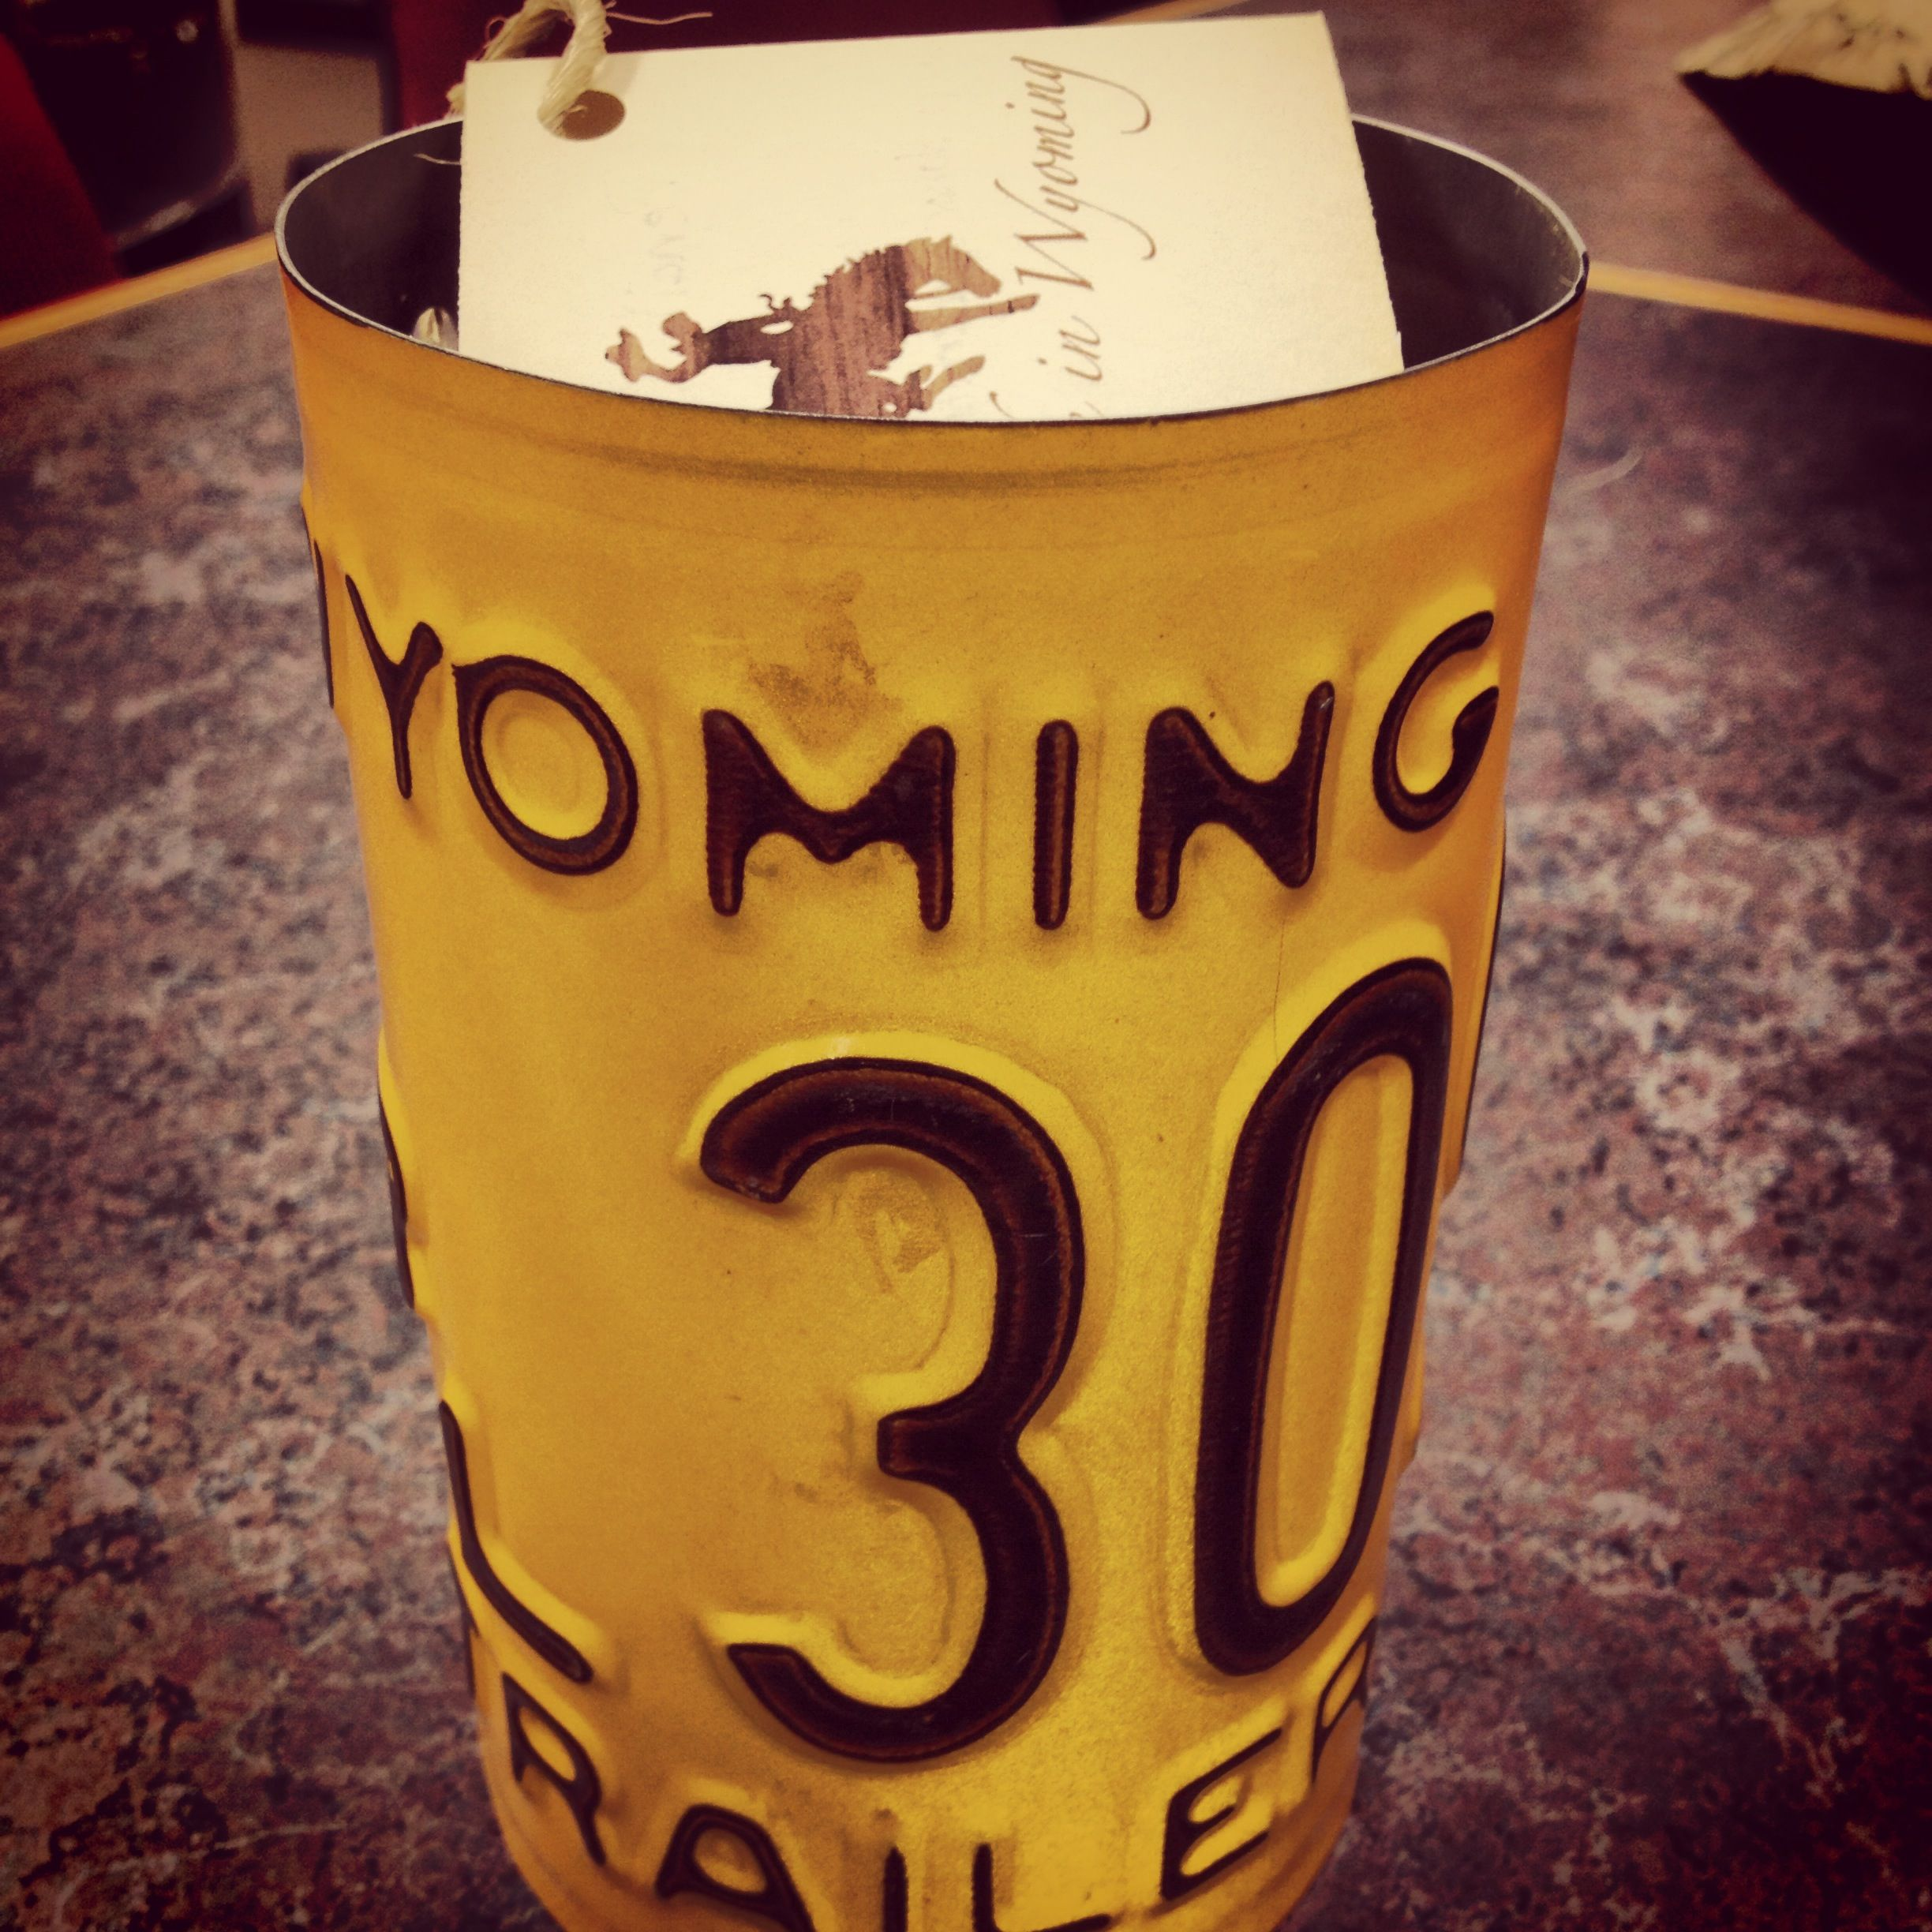 Vintage Wyoming license plate pencil cup, brown and gold #madeinwyoming  #GoWyo